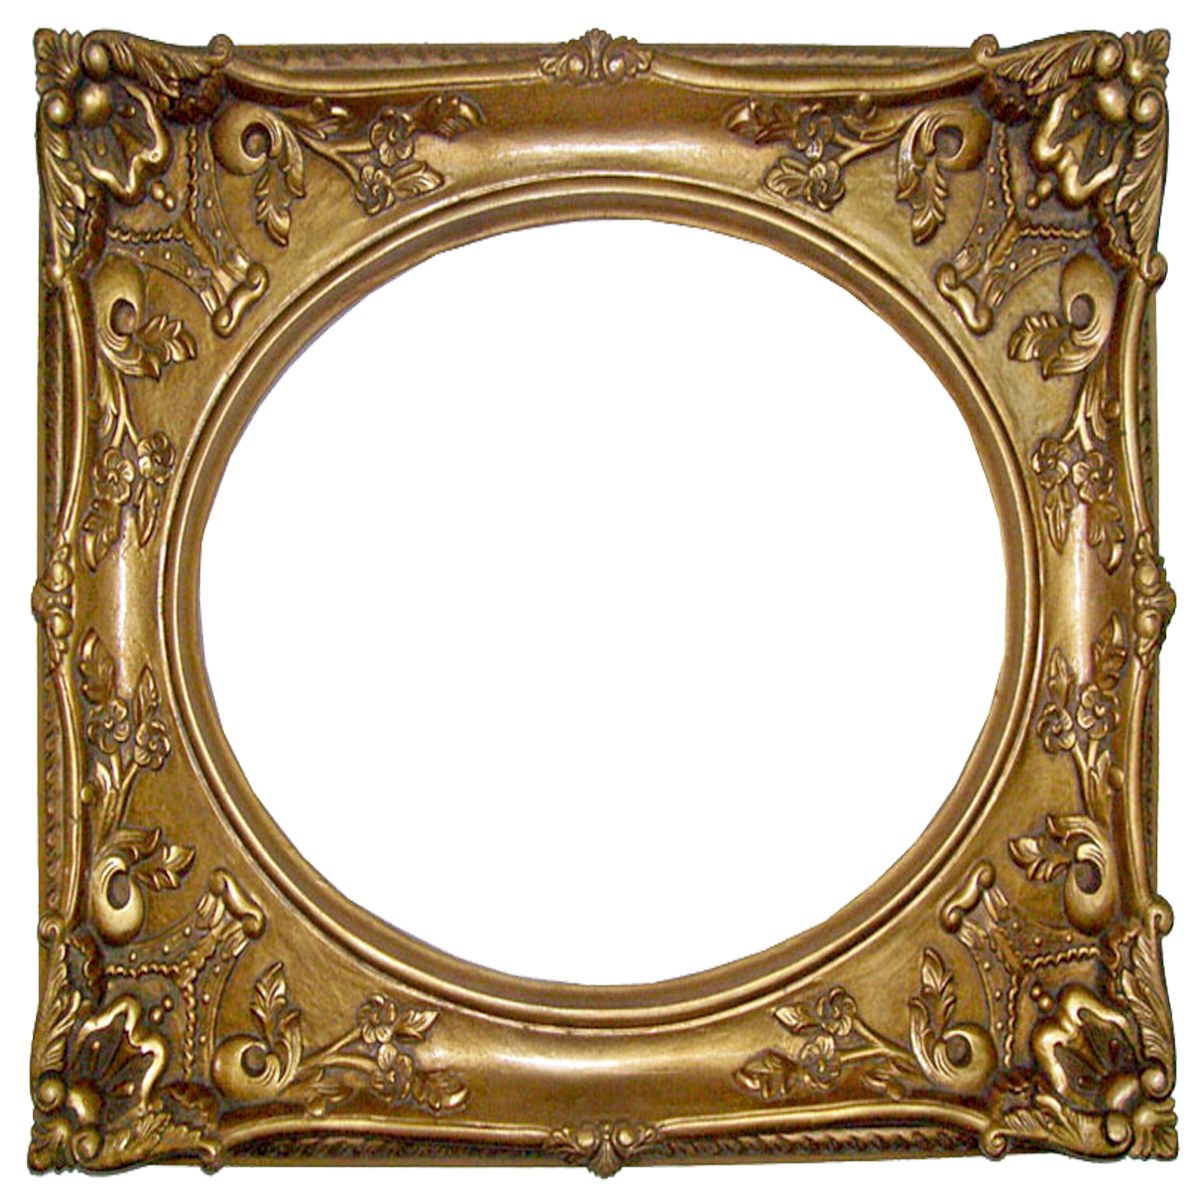 Doodlecraft vintage gold gilded frames free printables great for cards and wall art perfect for valentines day jeuxipadfo Images